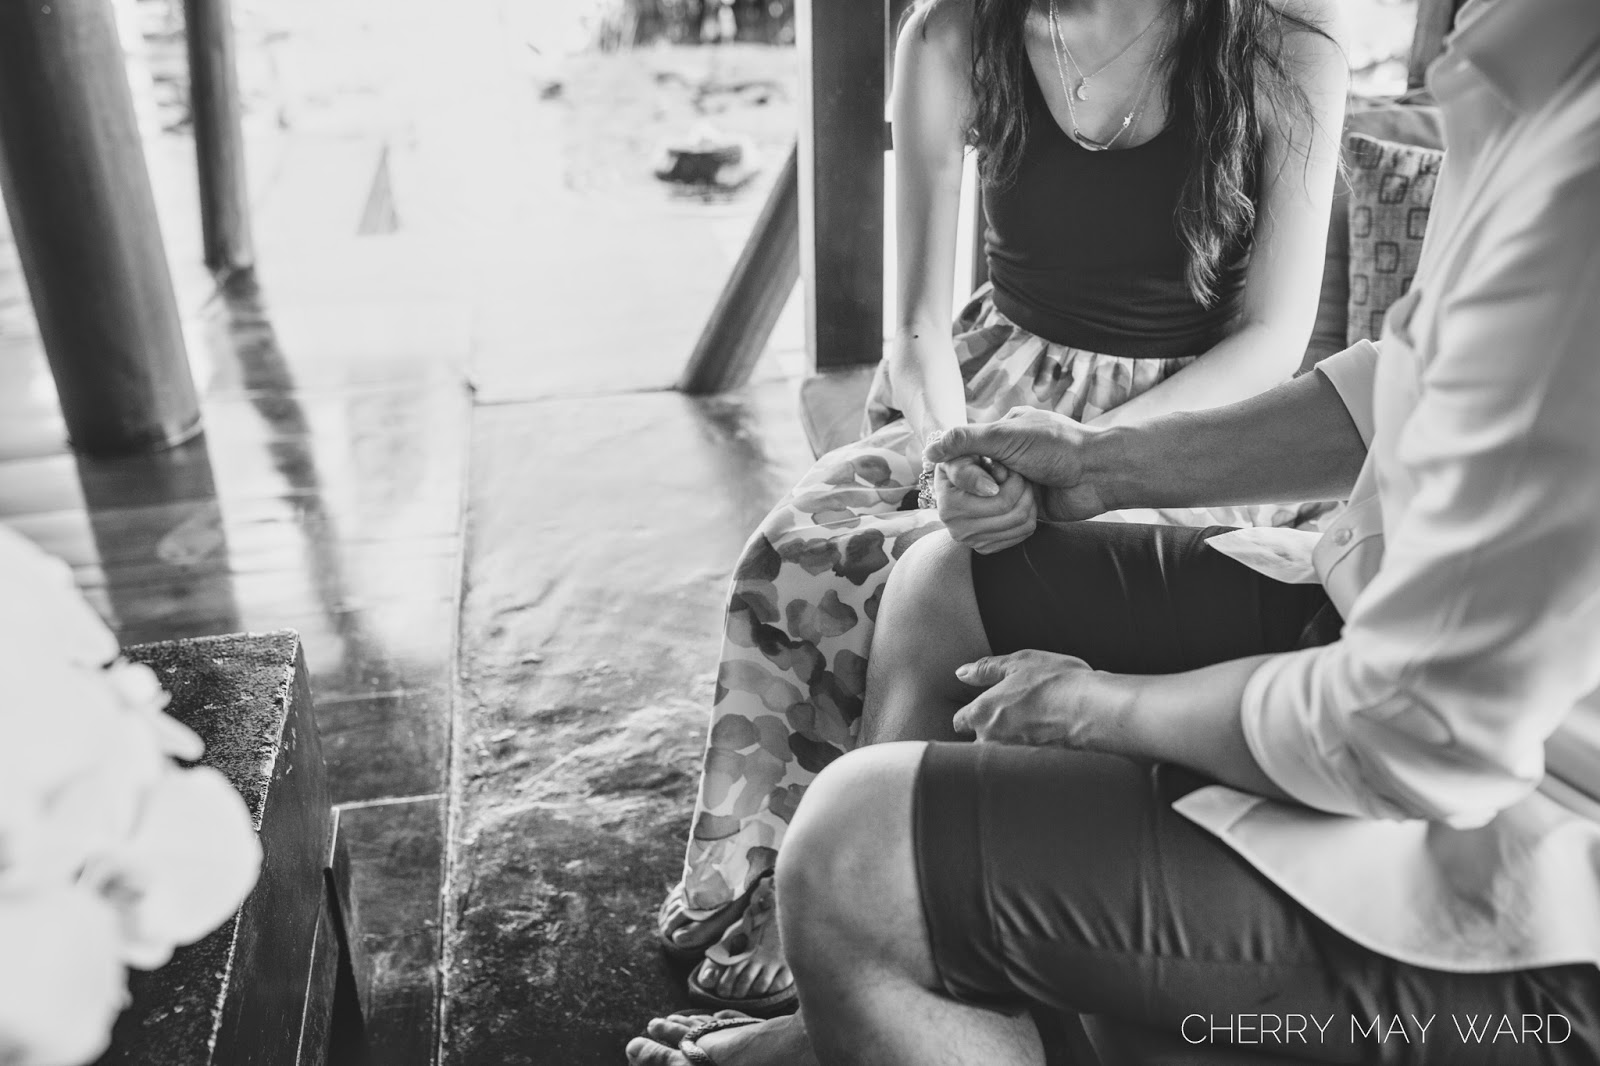 thumb war, a fun couple playing thumb wars during photo session, fun engagement photo session on Koh Samui